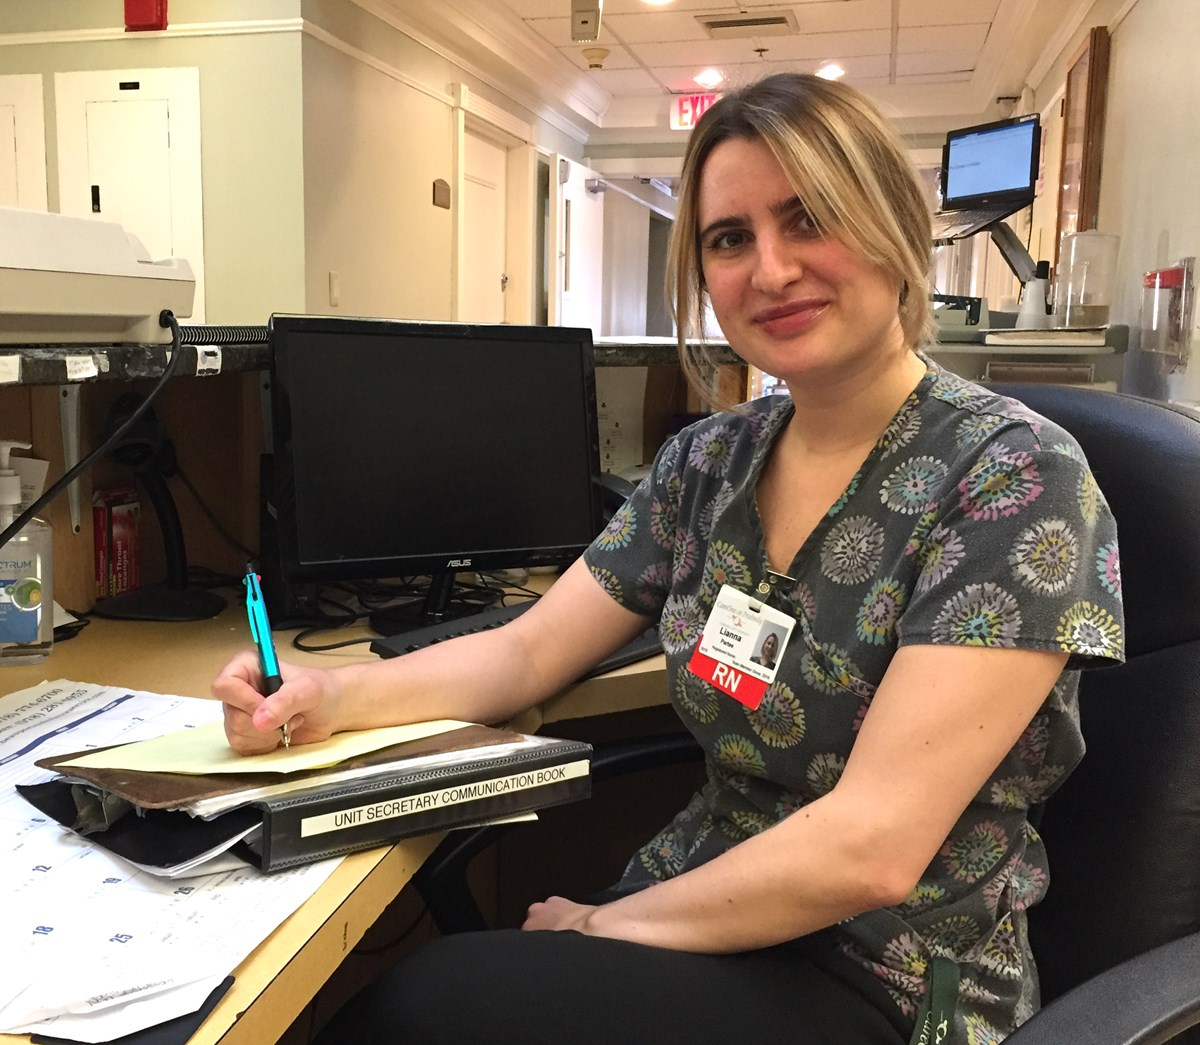 Lianna Partee taking notes at a desk working as an RN at a hospital